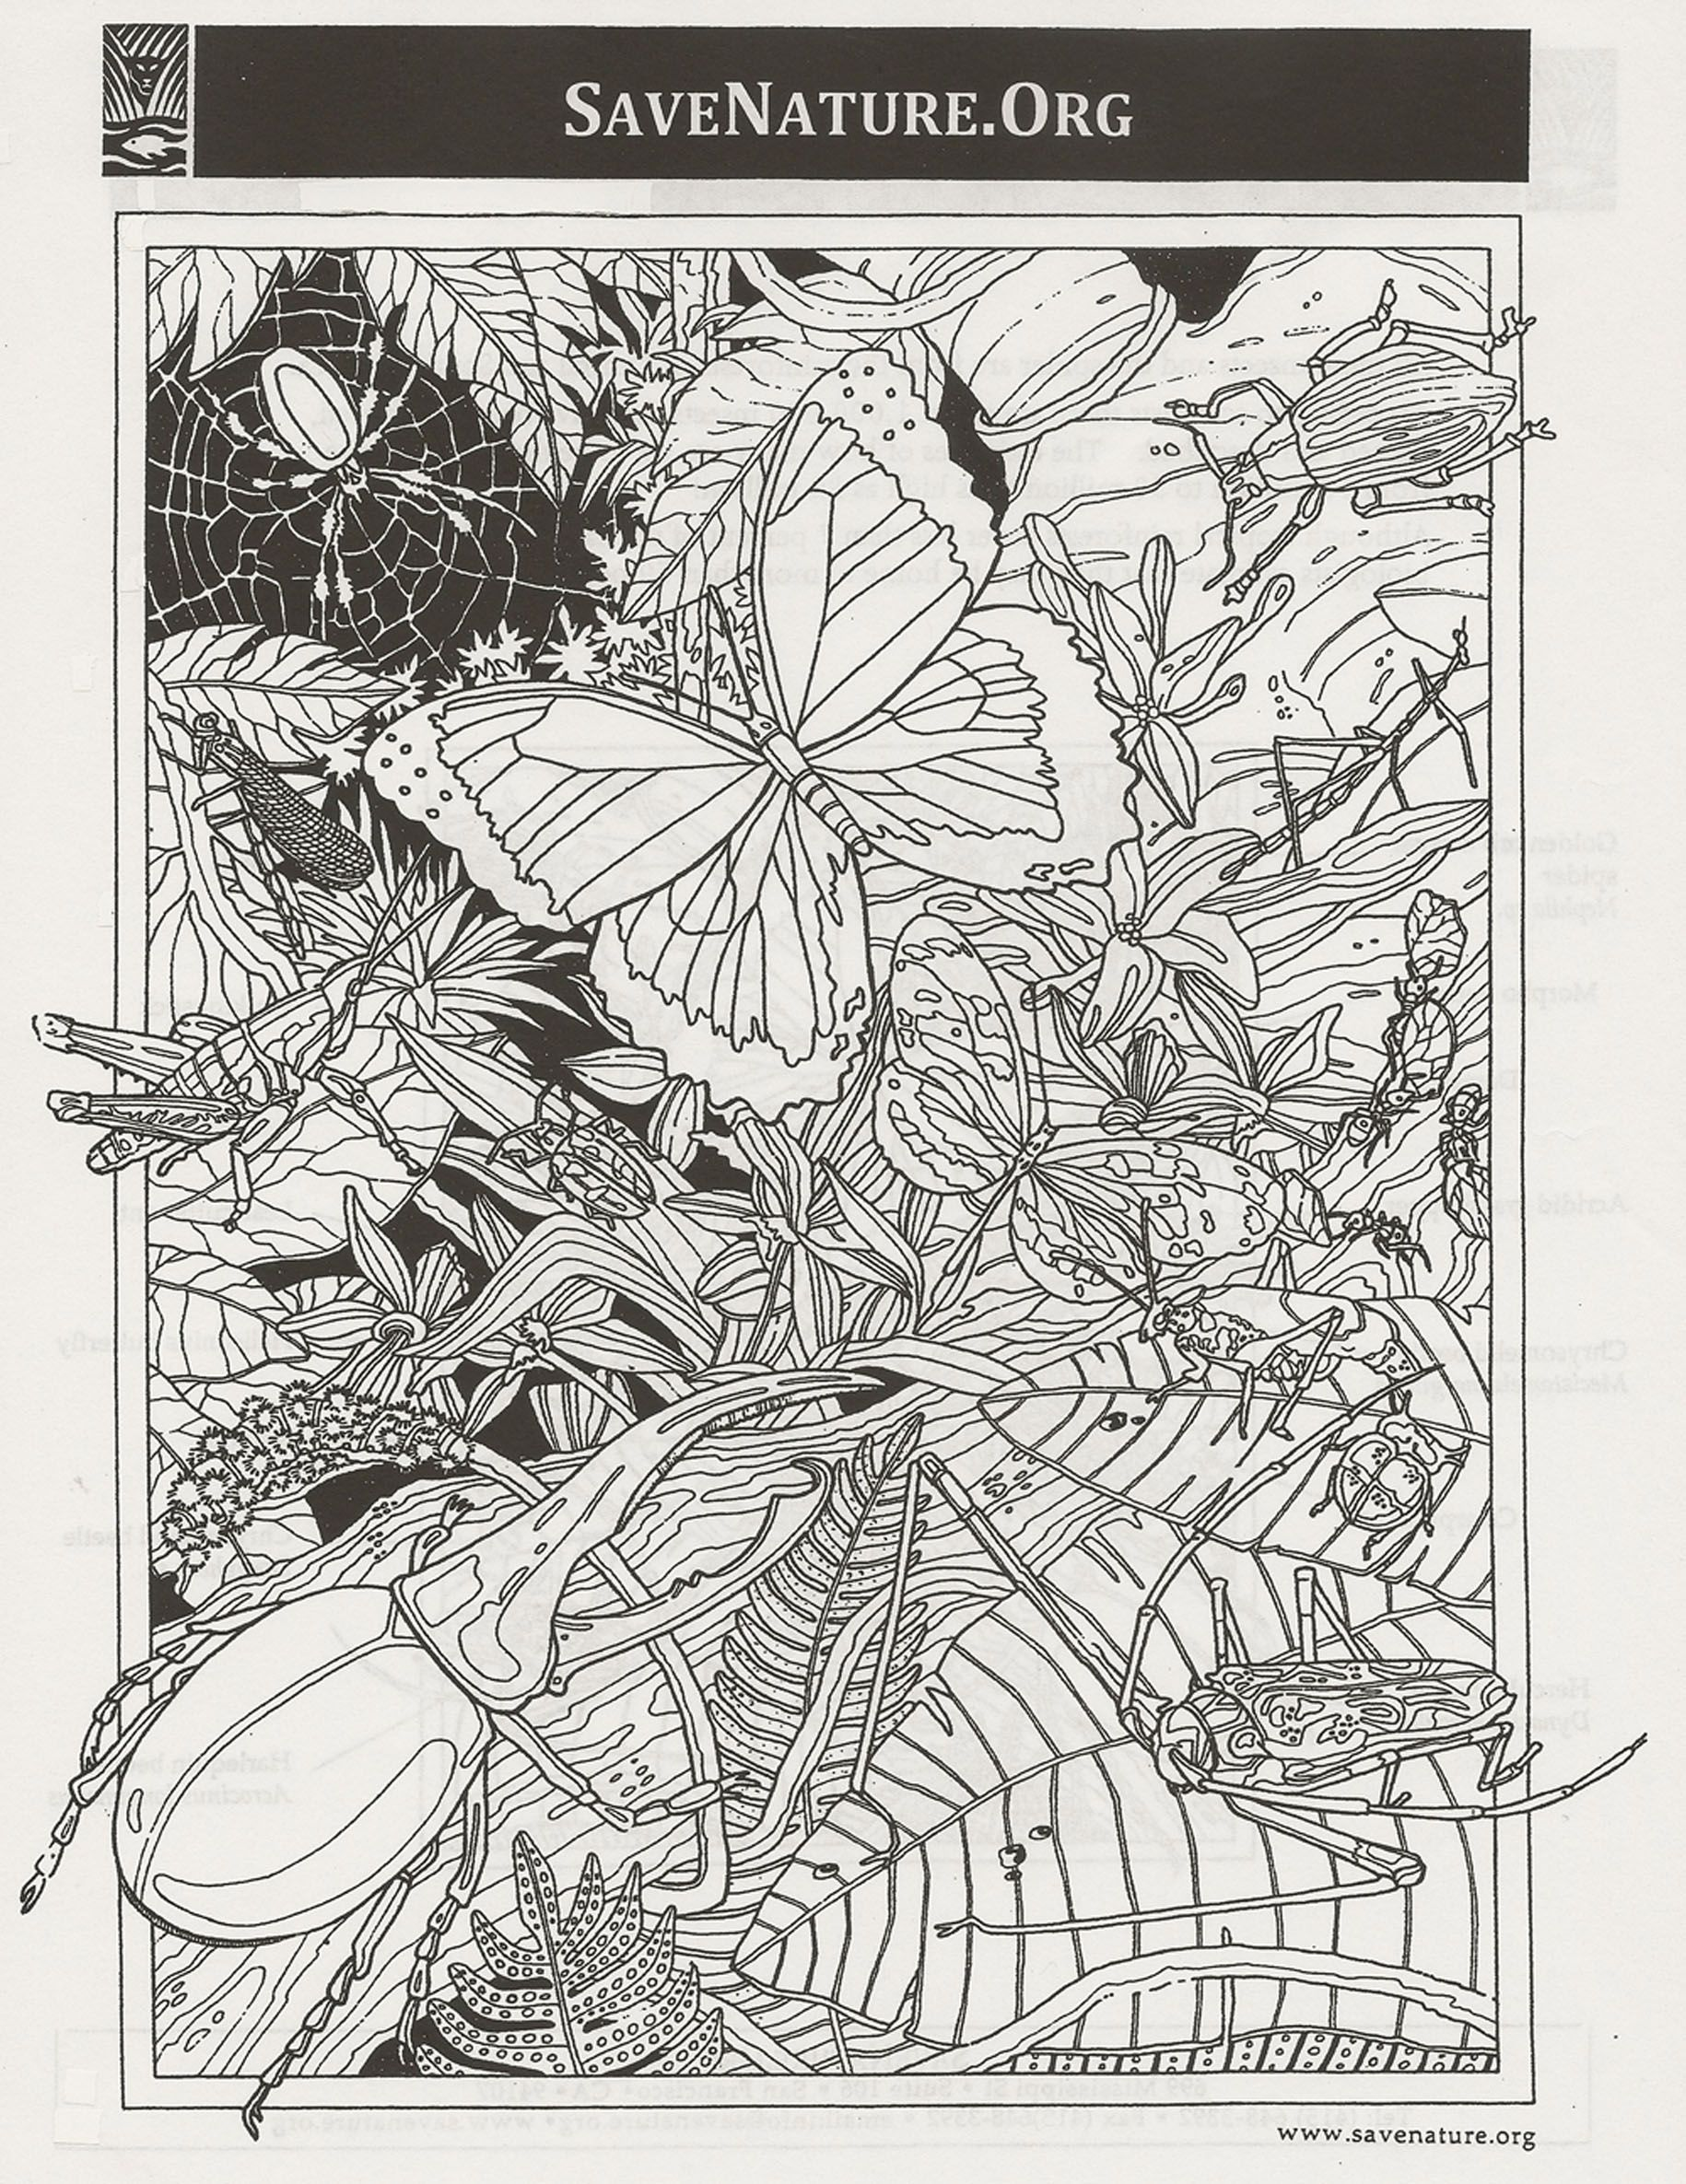 Detailed Coloring Pages For Adults | Save Nature - insect lab ...